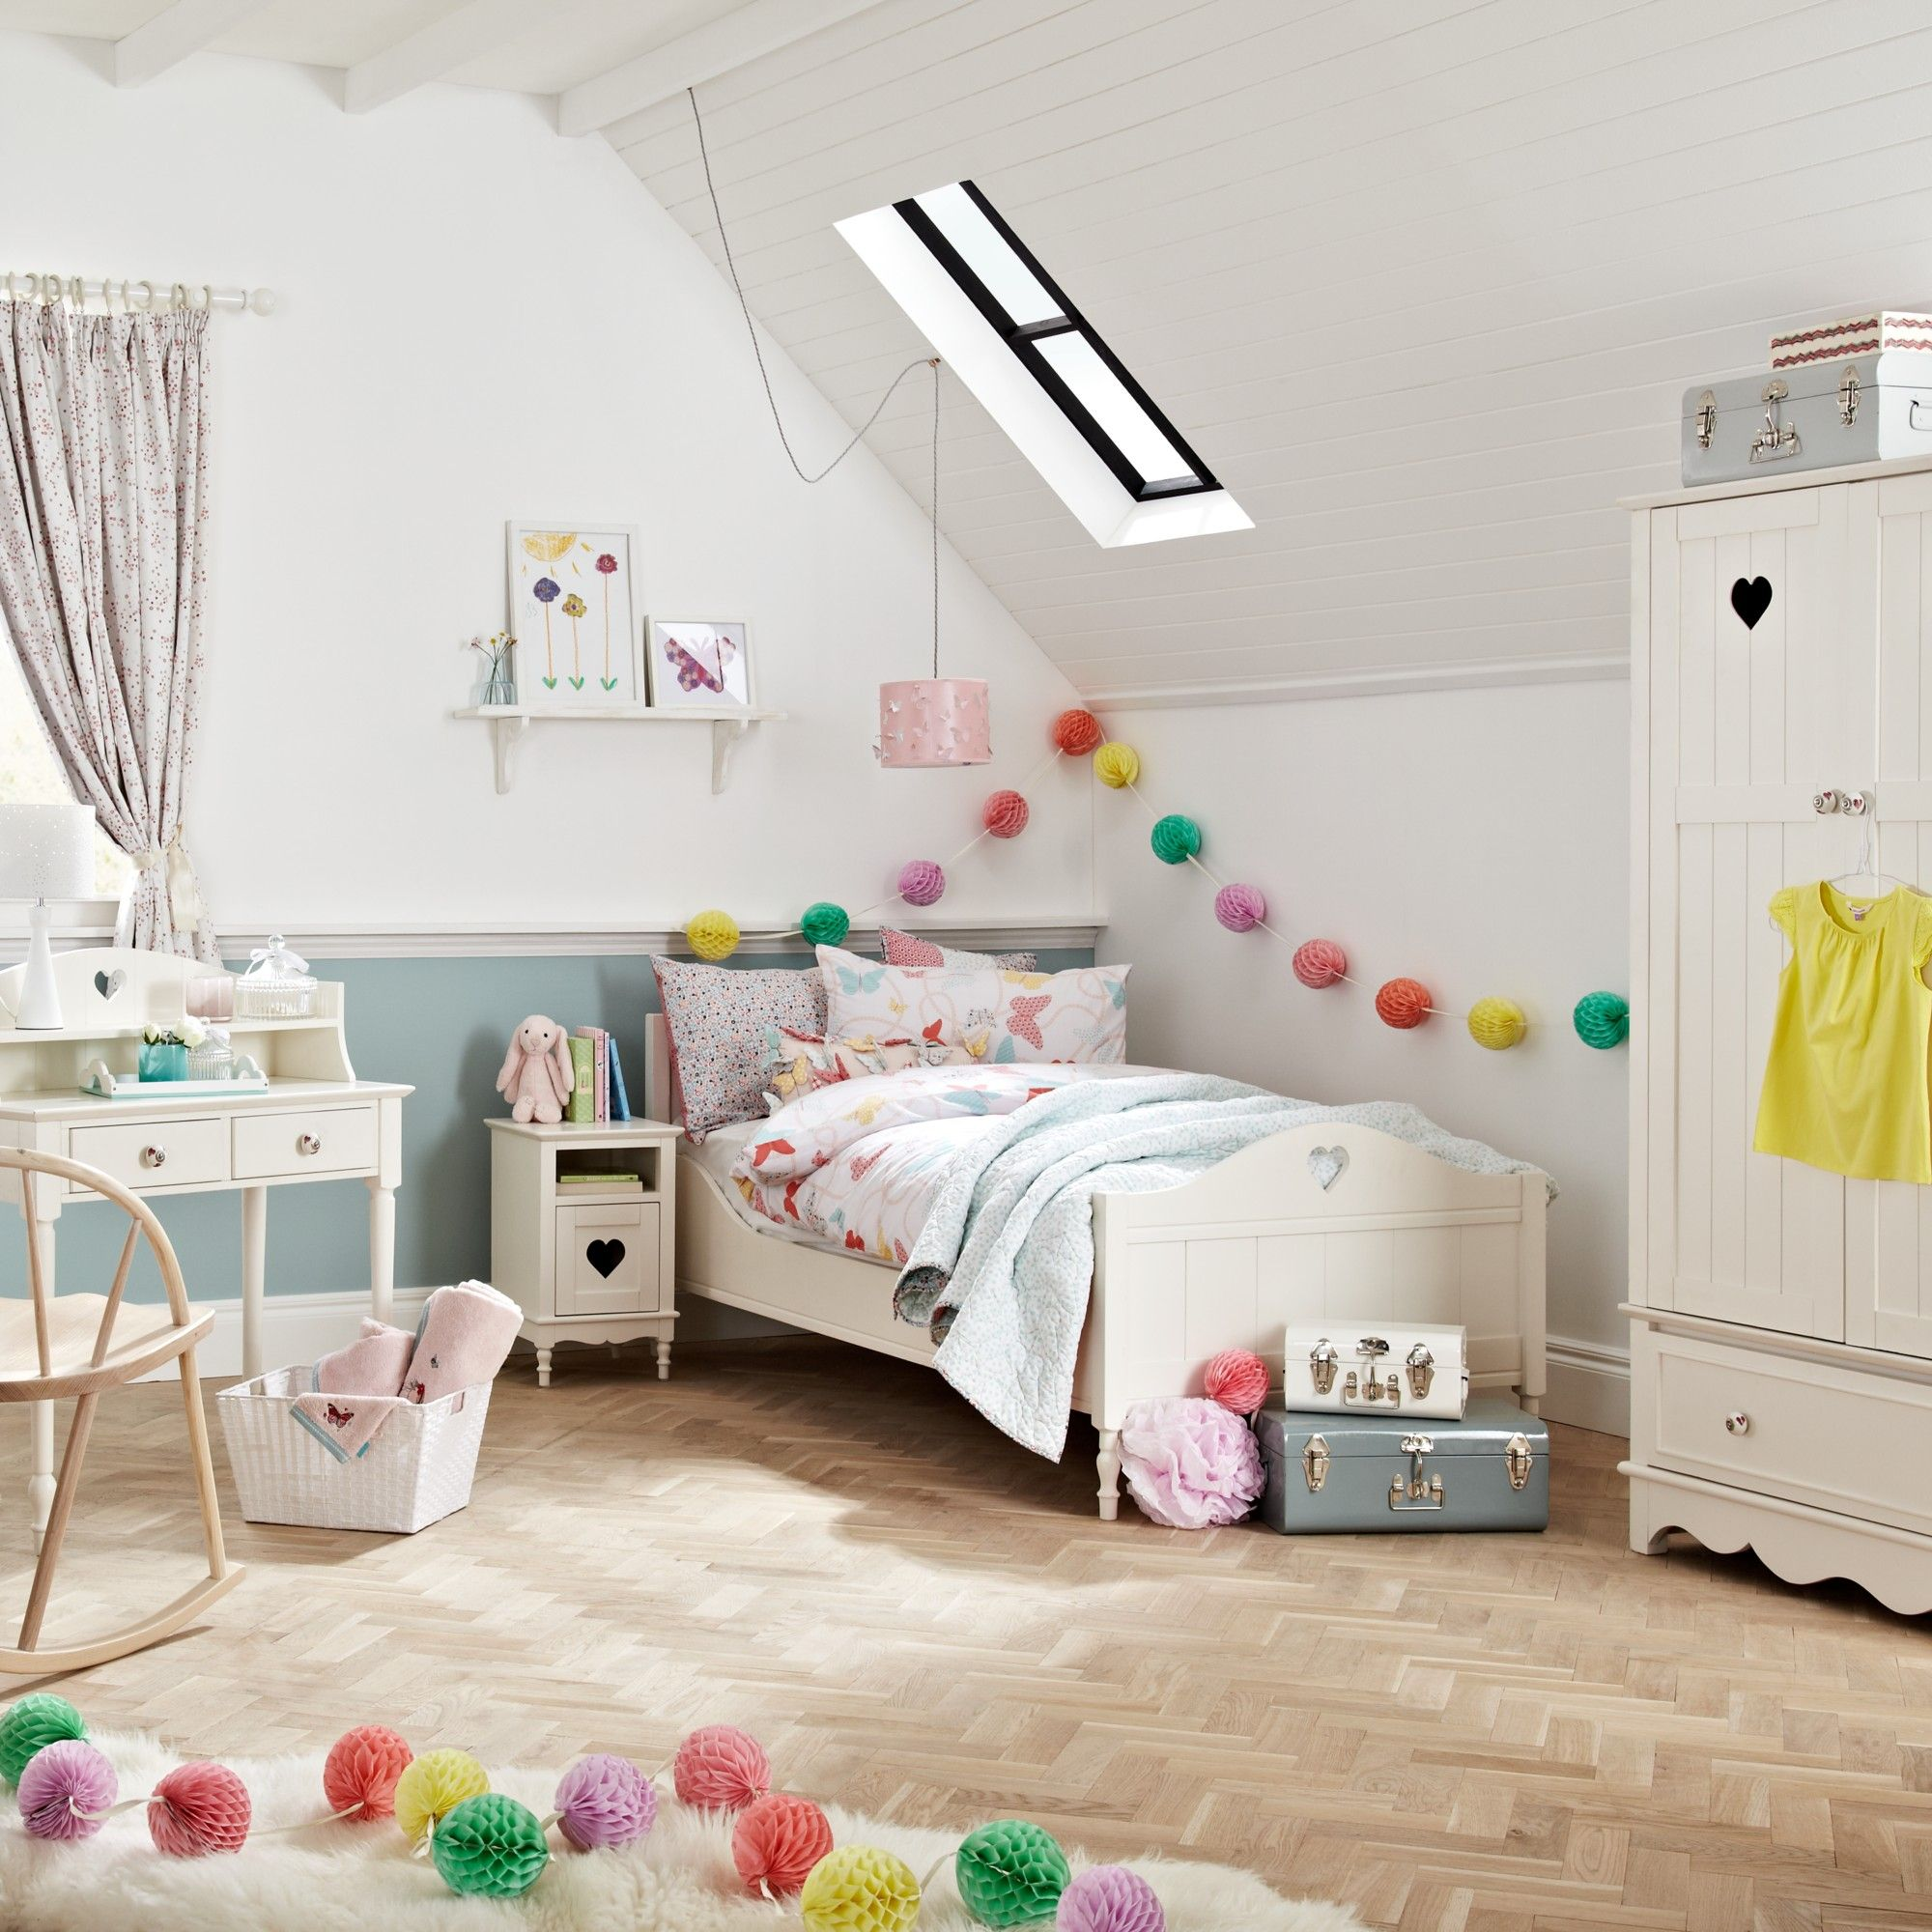 Need Some Inspiration For Your Child's Room? Head To John